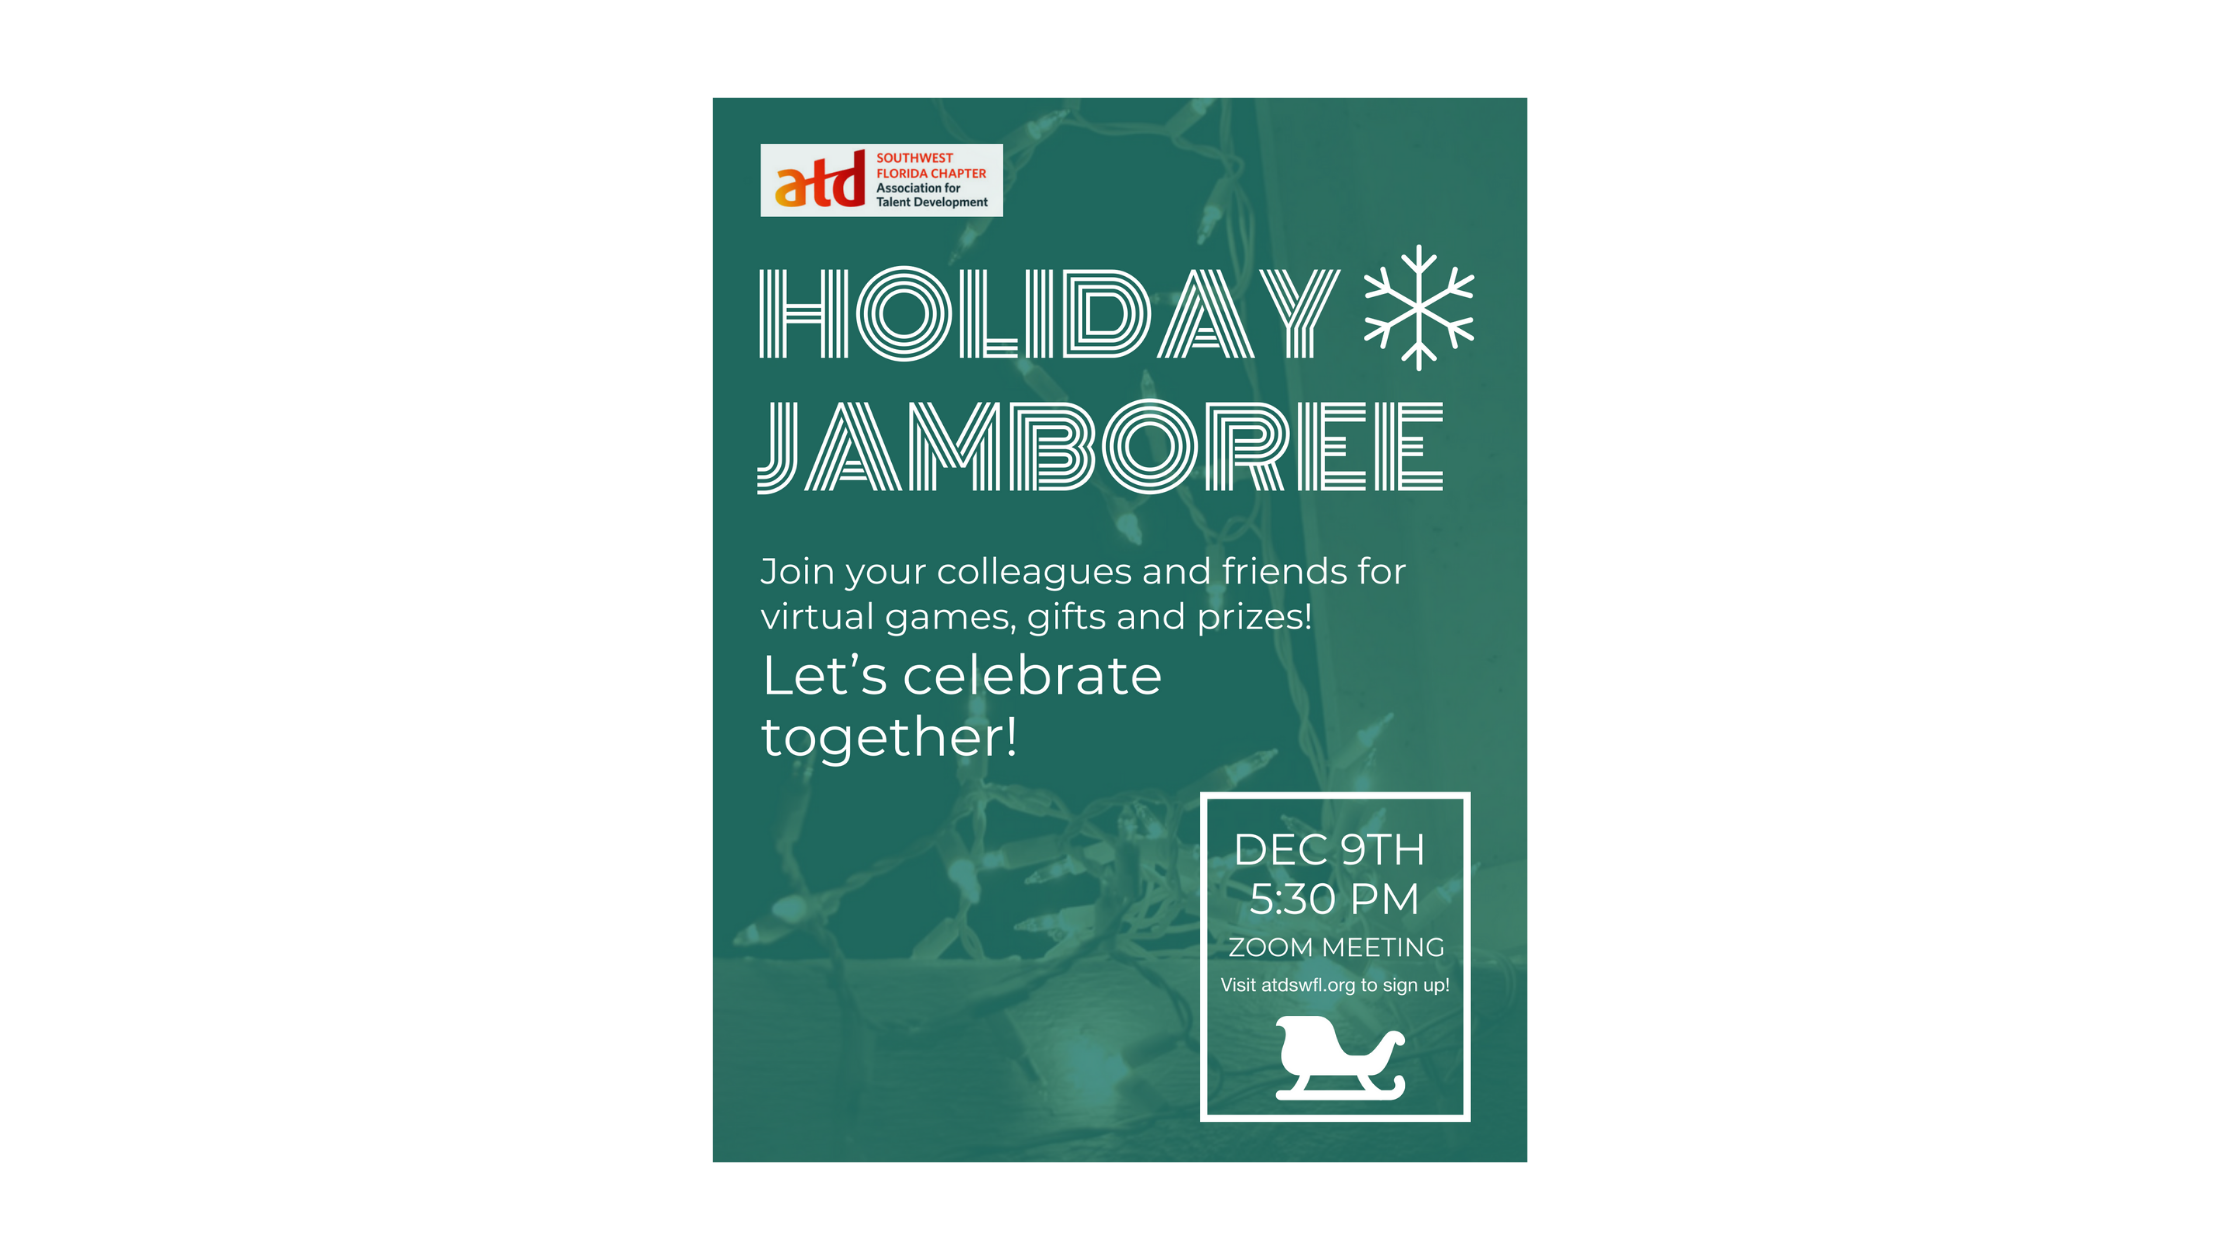 Association for Talent Development hosting a Holiday Jamboree in conjunction with ATD Employee Learning Week